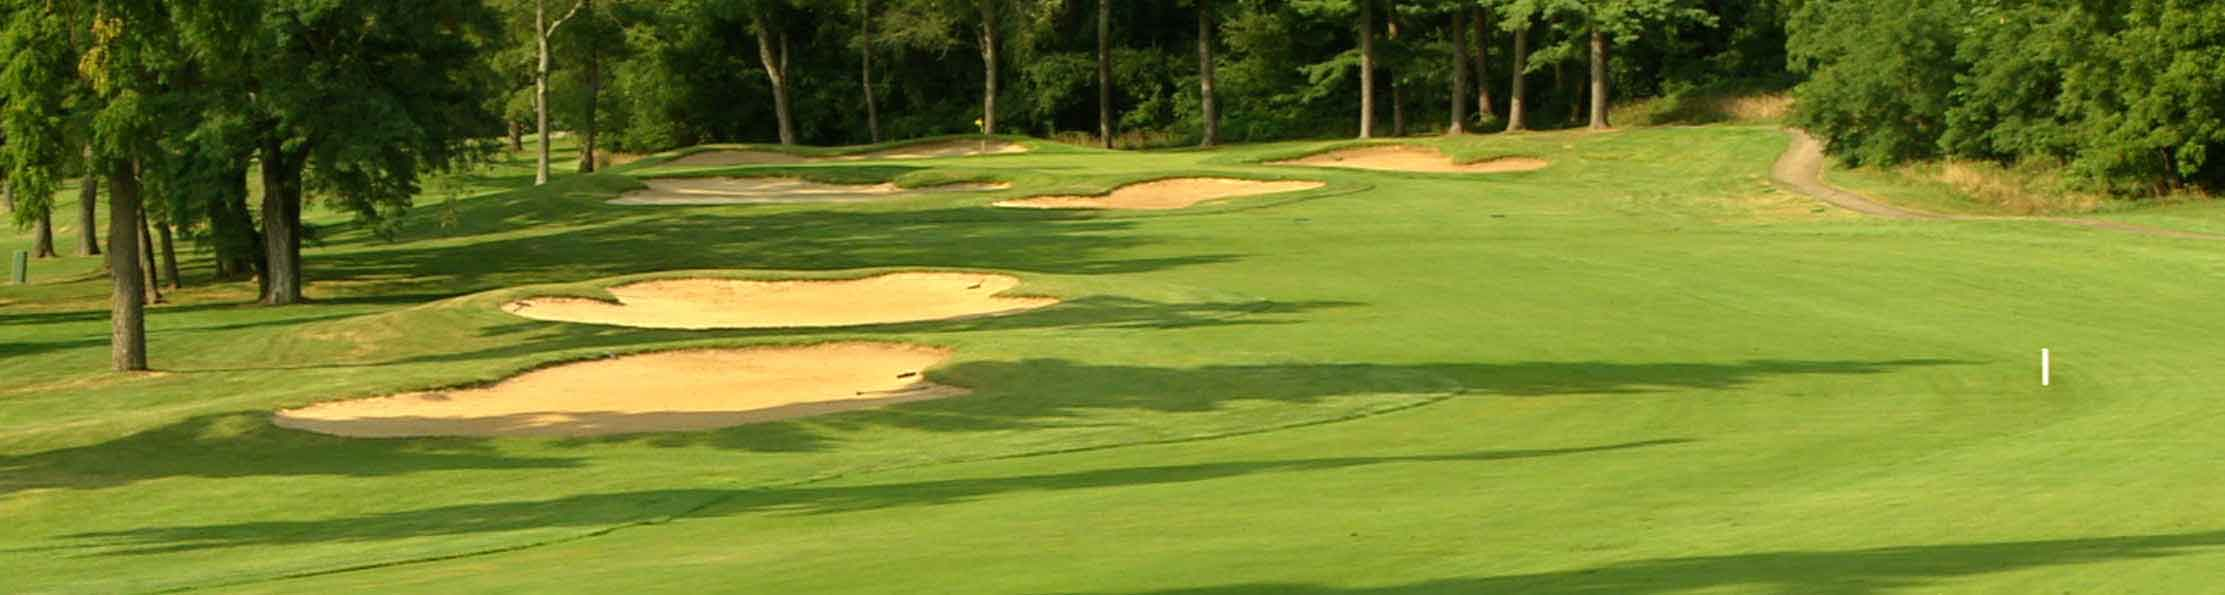 The Golf Courses of Lawsonia, Green Lake WI, Golf, promotion